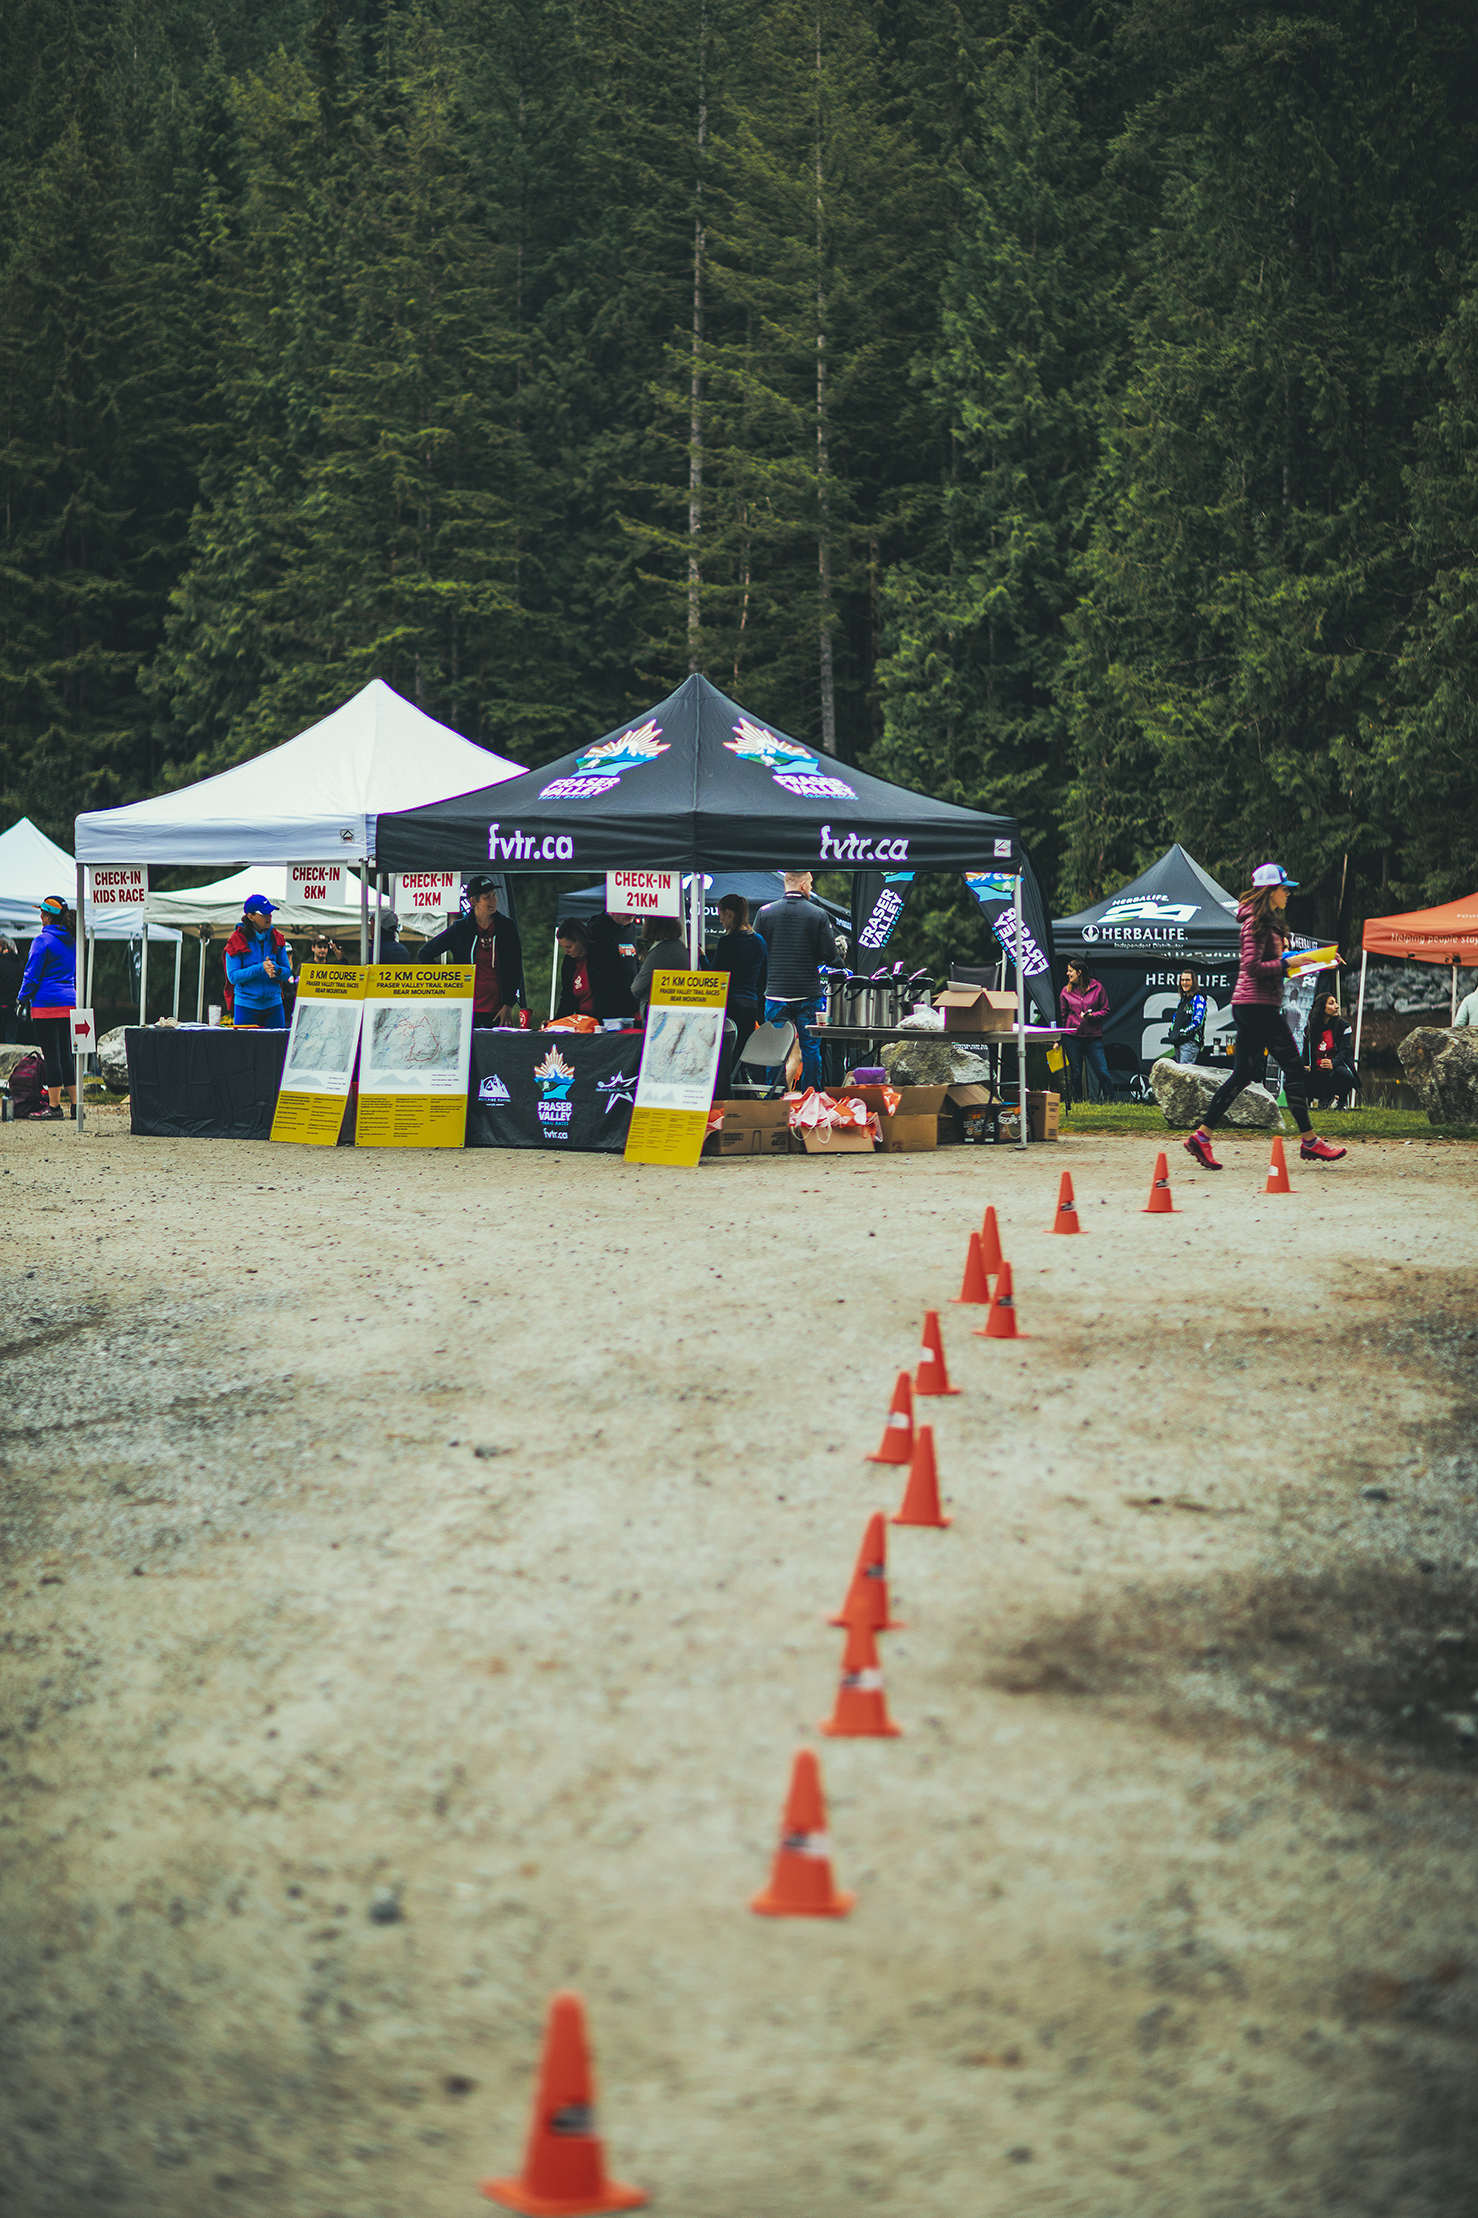 Fraser Valley Trail Races - Bear Mountain - IMG_1335 by Brice Ferre Studio - Vancouver Portrait Adventure and Athlete Photographer.jpg